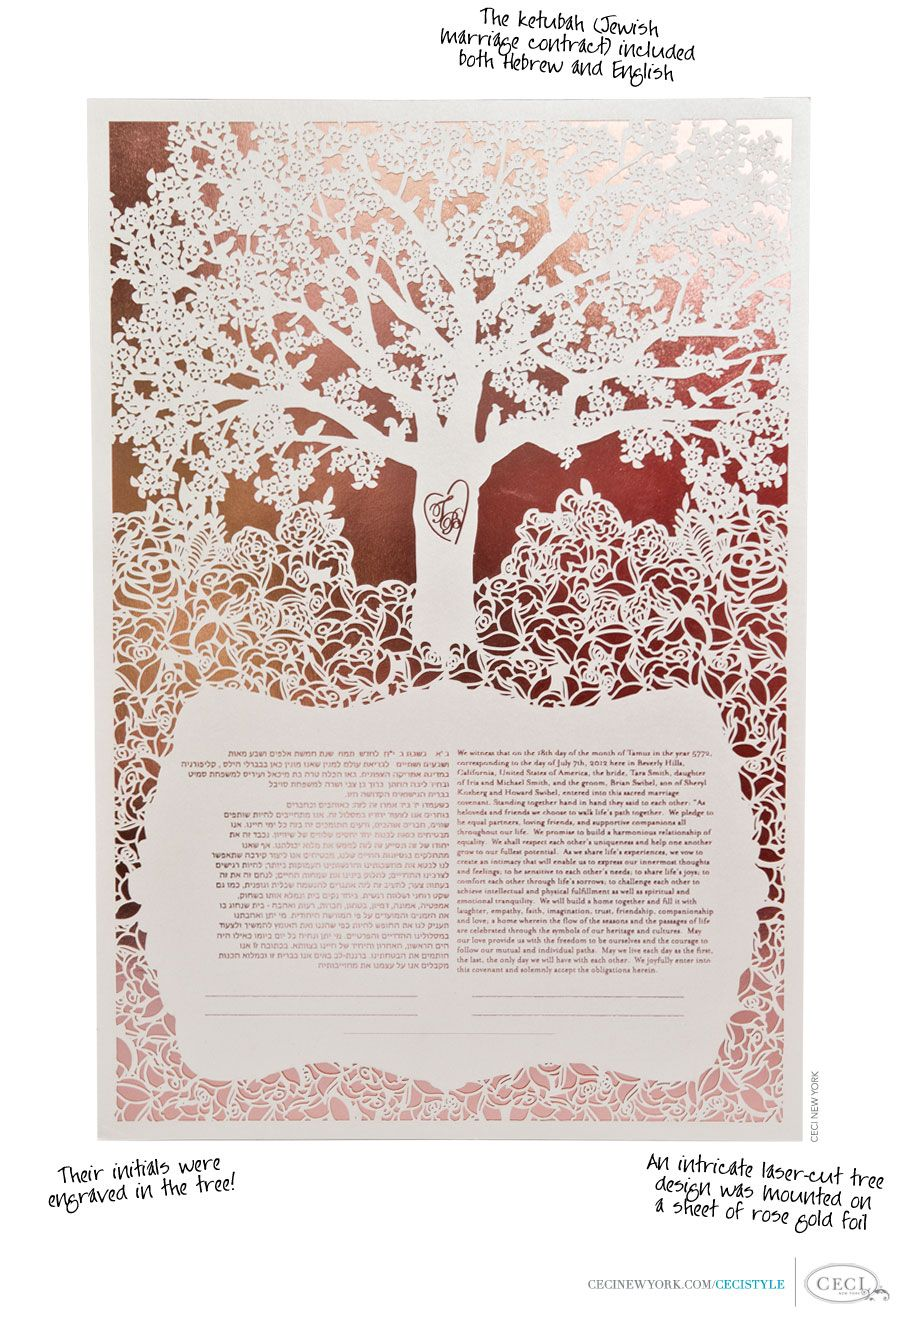 The Ketubah Jewish Marriage Contract Included Both Hebrew And